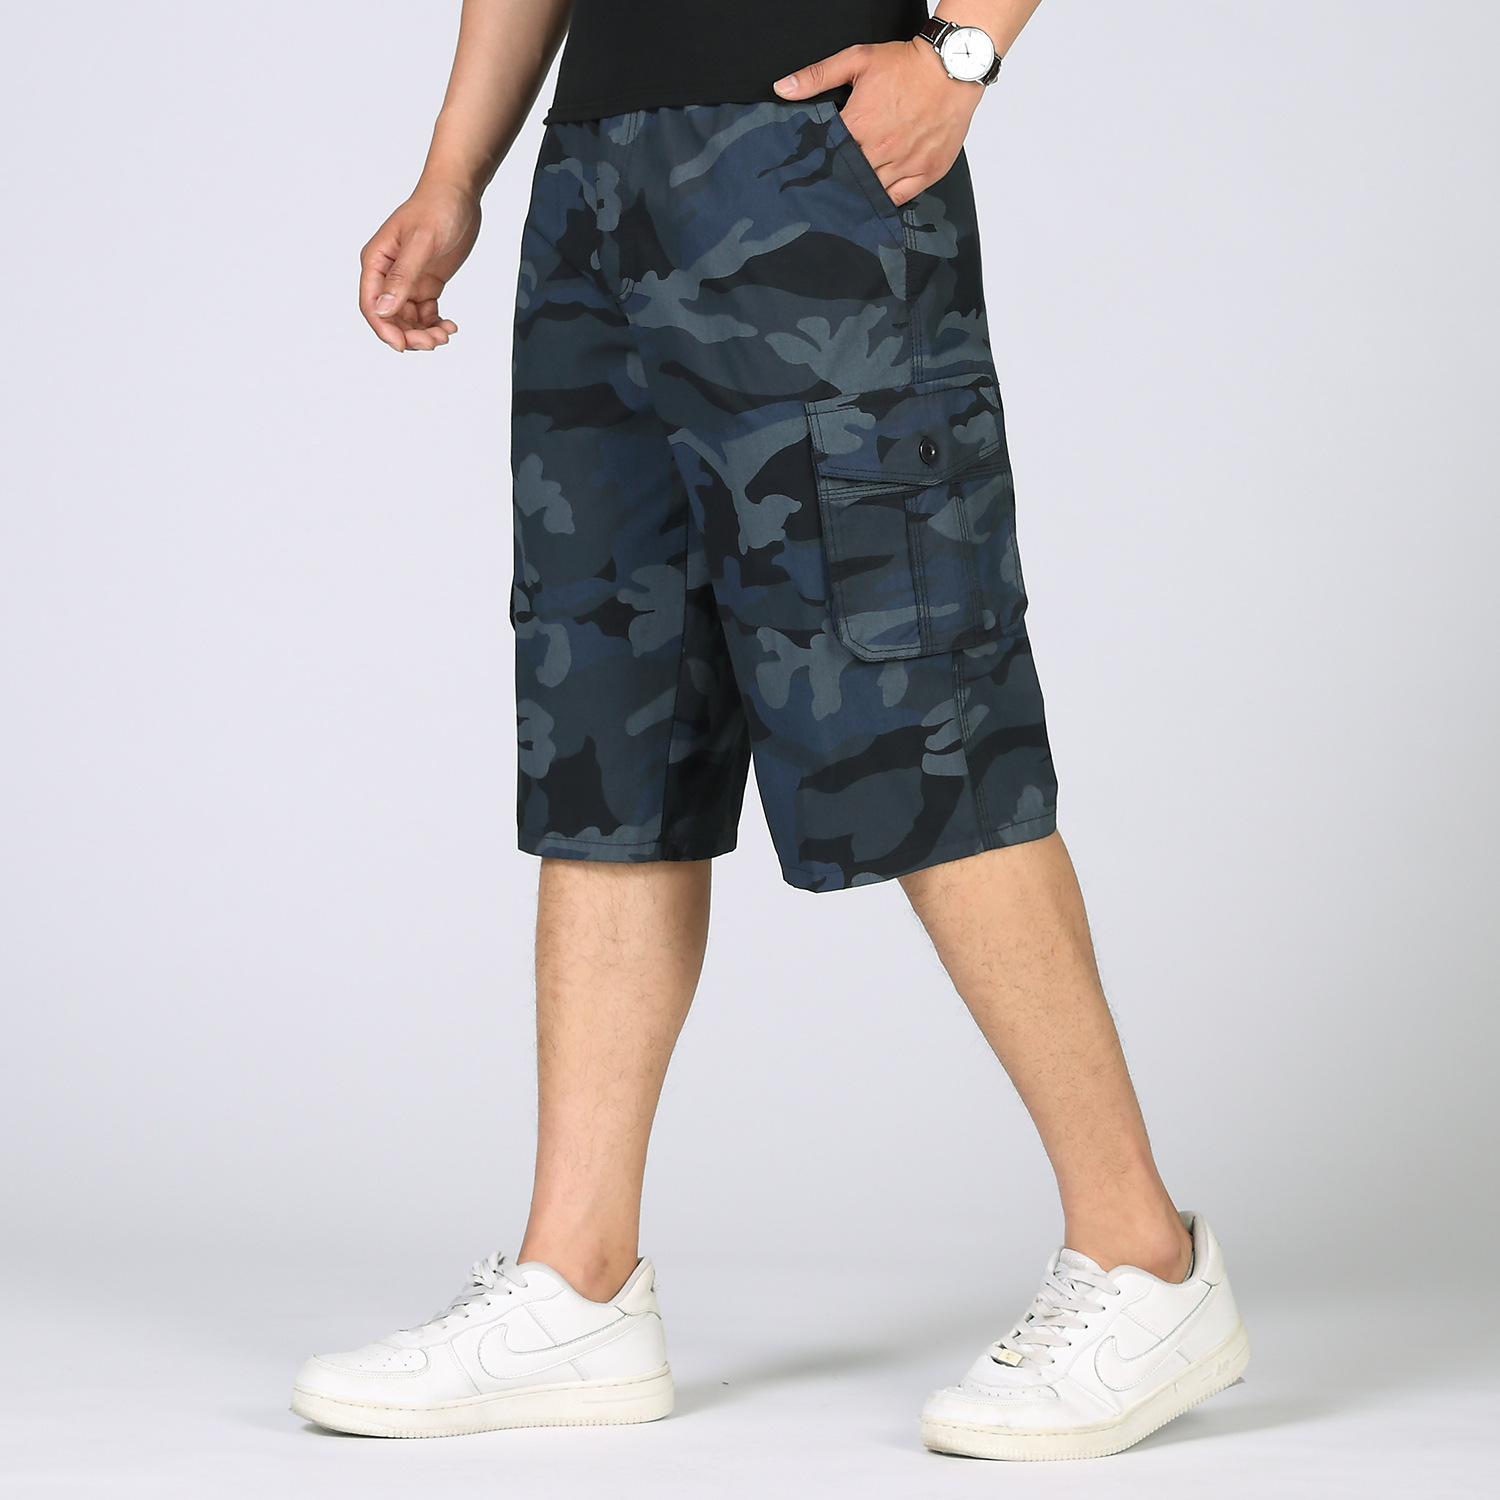 Men Casual Camouflage Short Army Green Military Style Cargo Summer Plus Size 4XL 5XL Losse Blue Camo Bermuda Hot Cotton Capri